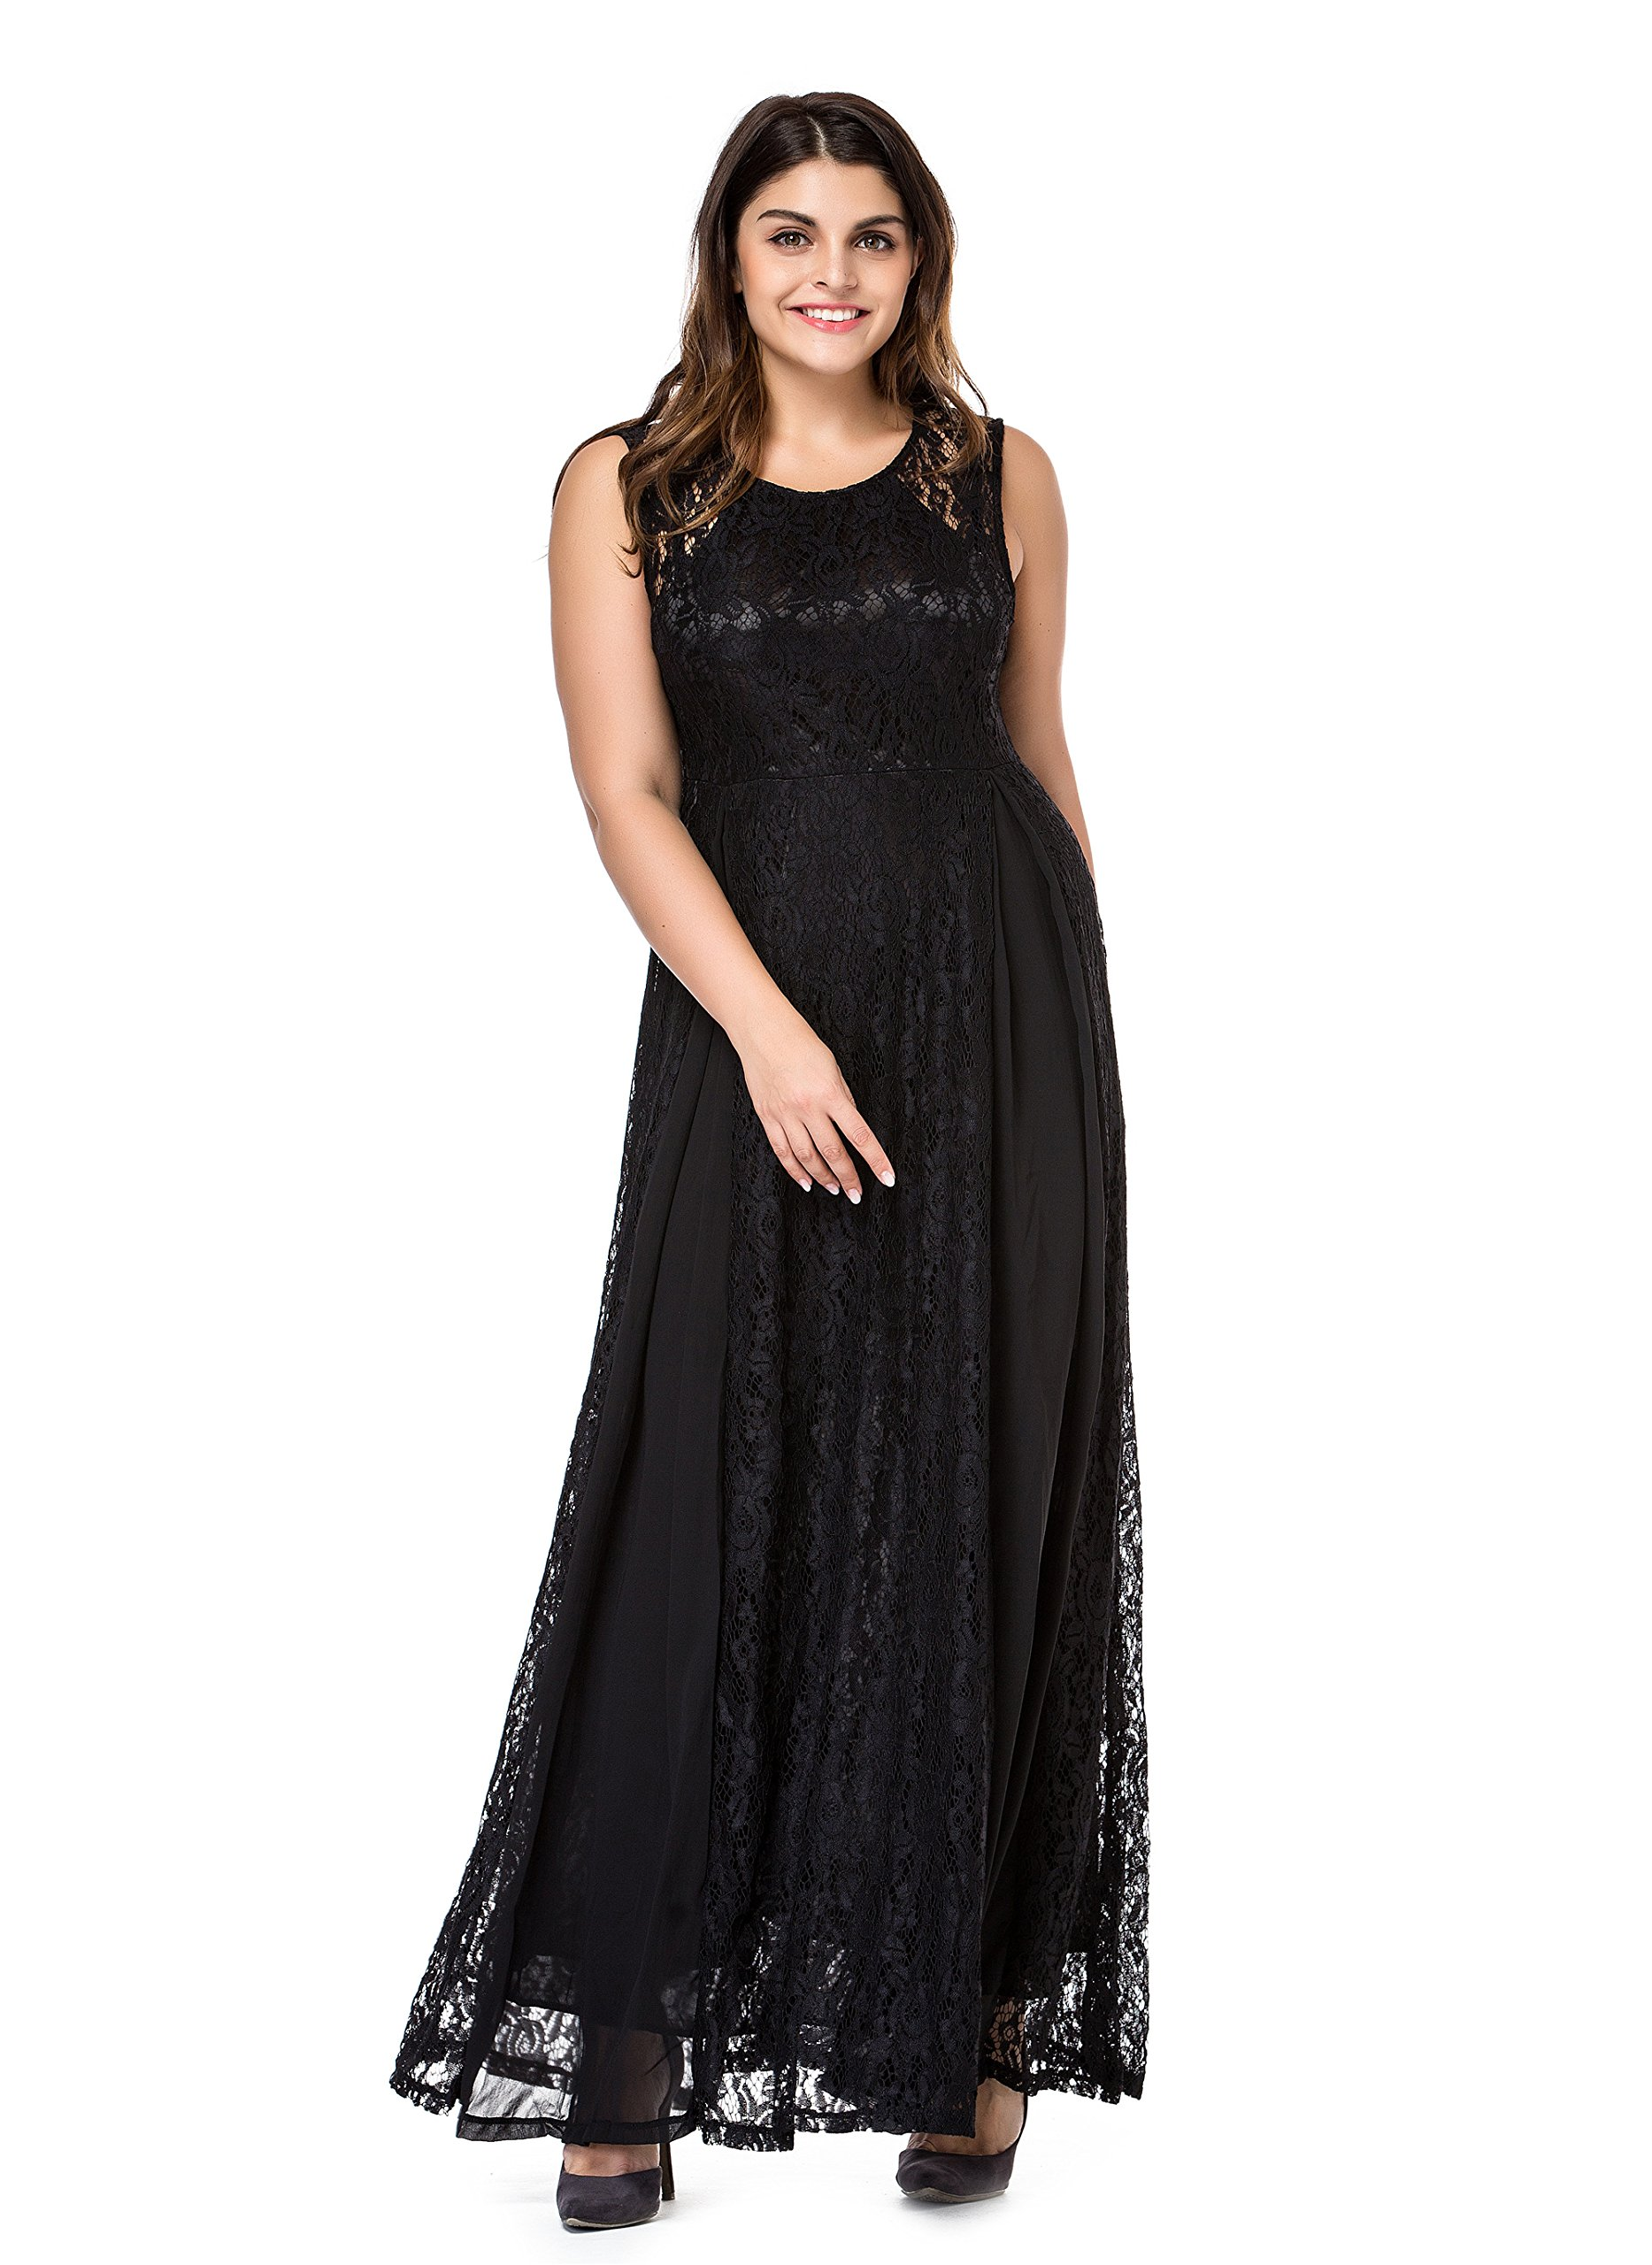 Empire Waist Formal Dresses With Sleeves: Amazon.com